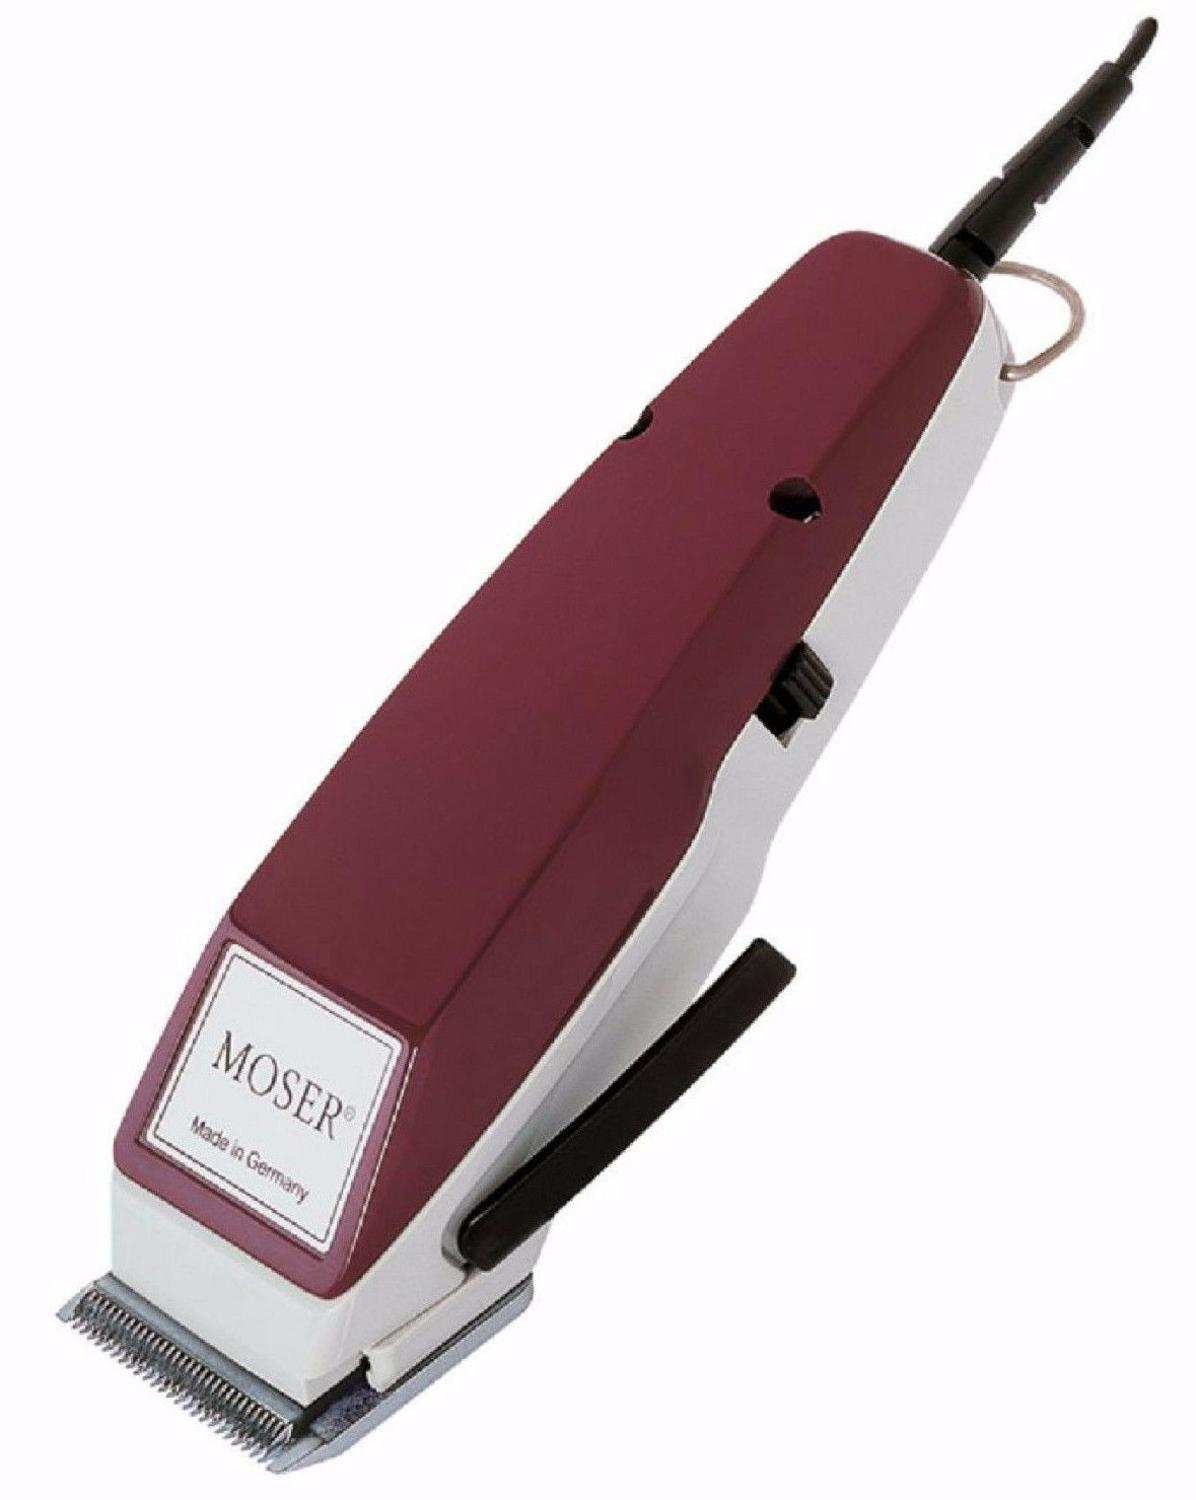 Moser Professional Barber 1400-0050 Classic Corded Hair Clipper Genuine SALES